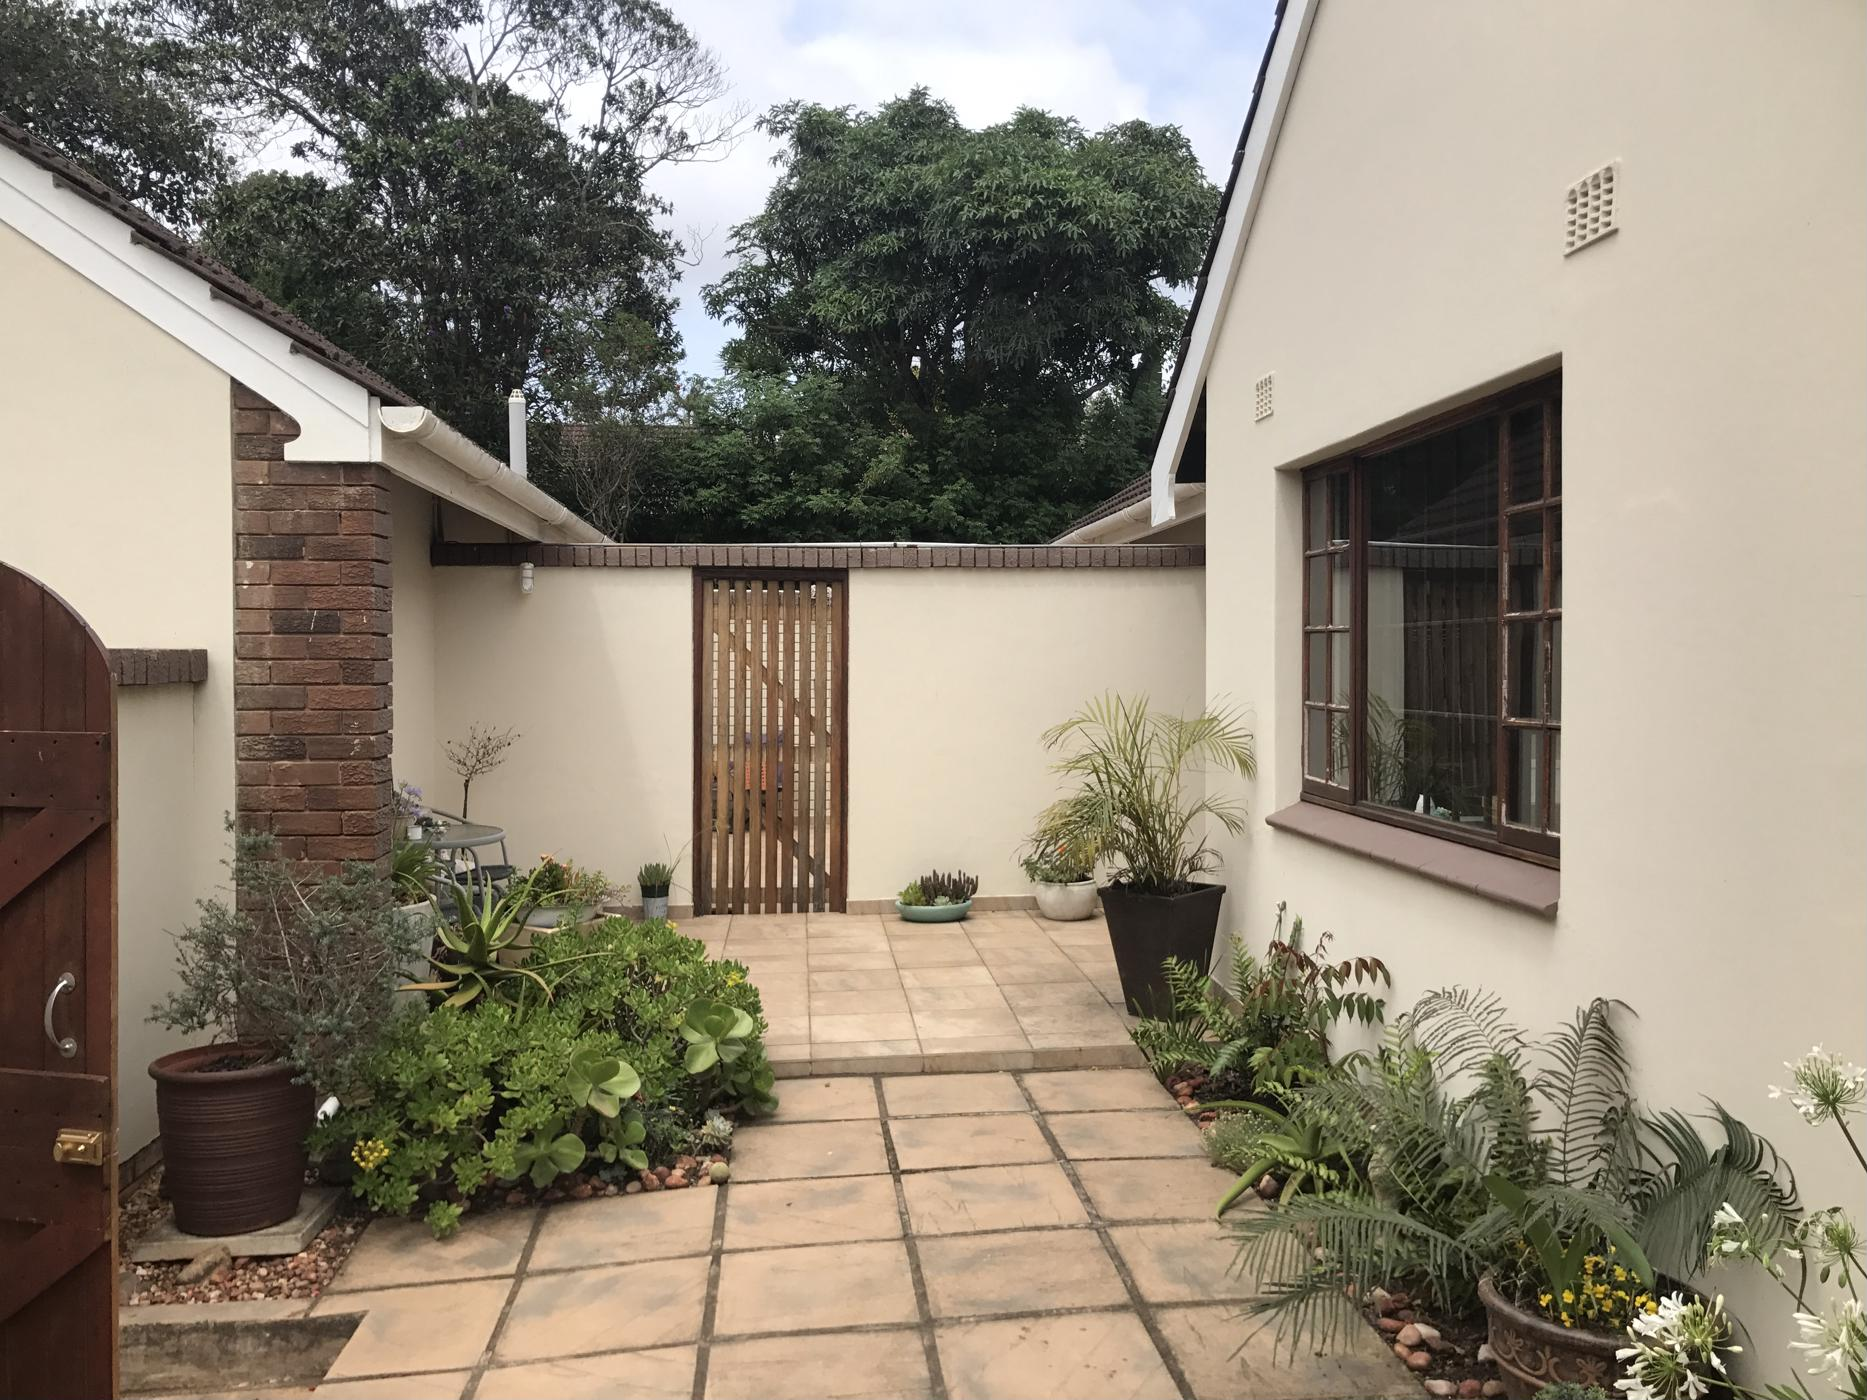 https://listing.pamgolding.co.za/images/properties/201811/1127580/H/1127580_H_4.jpg